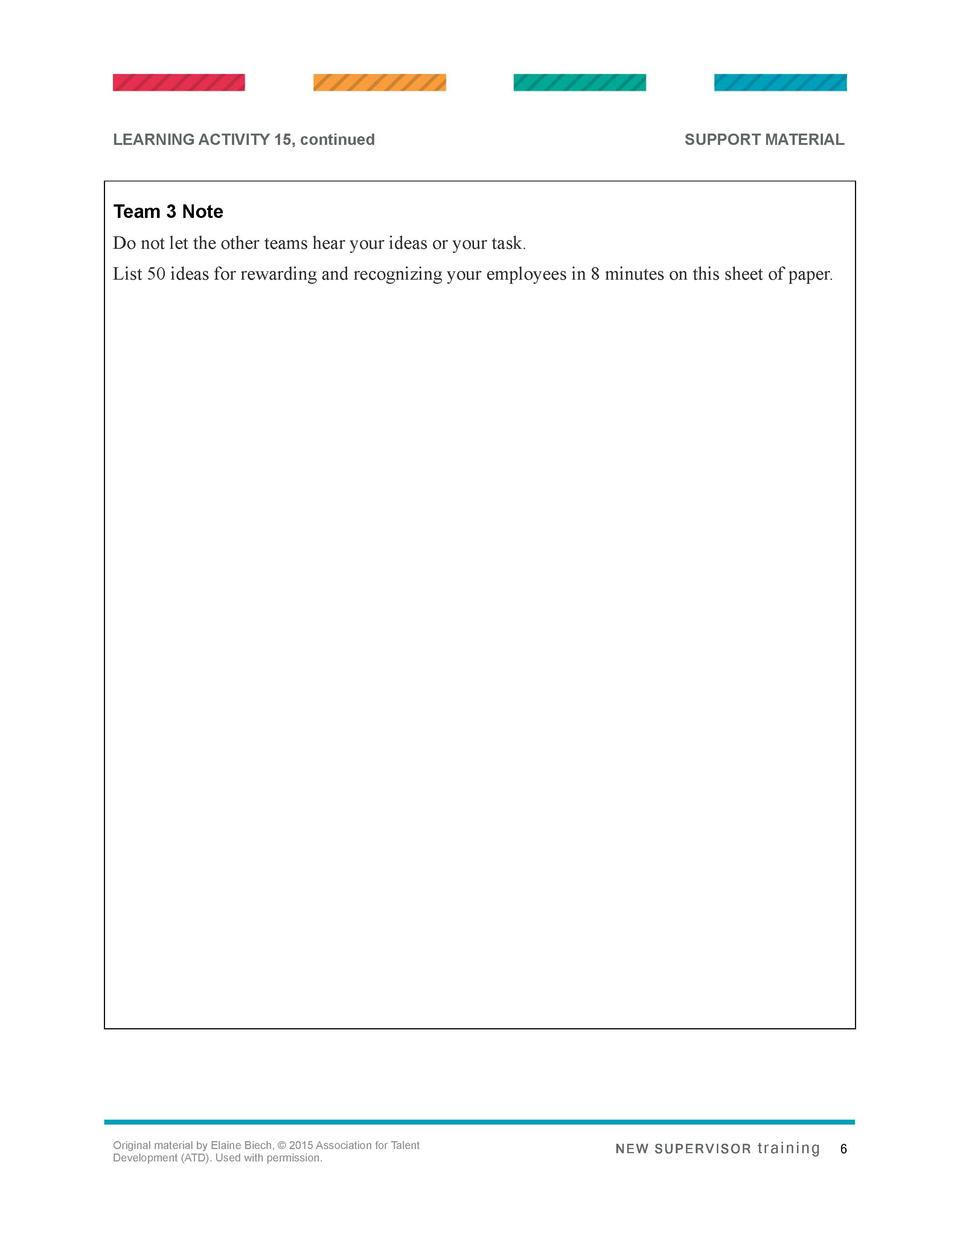 LEARNING ACTIVITY 15, continued  SUPPORT MATERIAL  Team 3 Note Do not let the other teams hear your ideas or your task. Li...